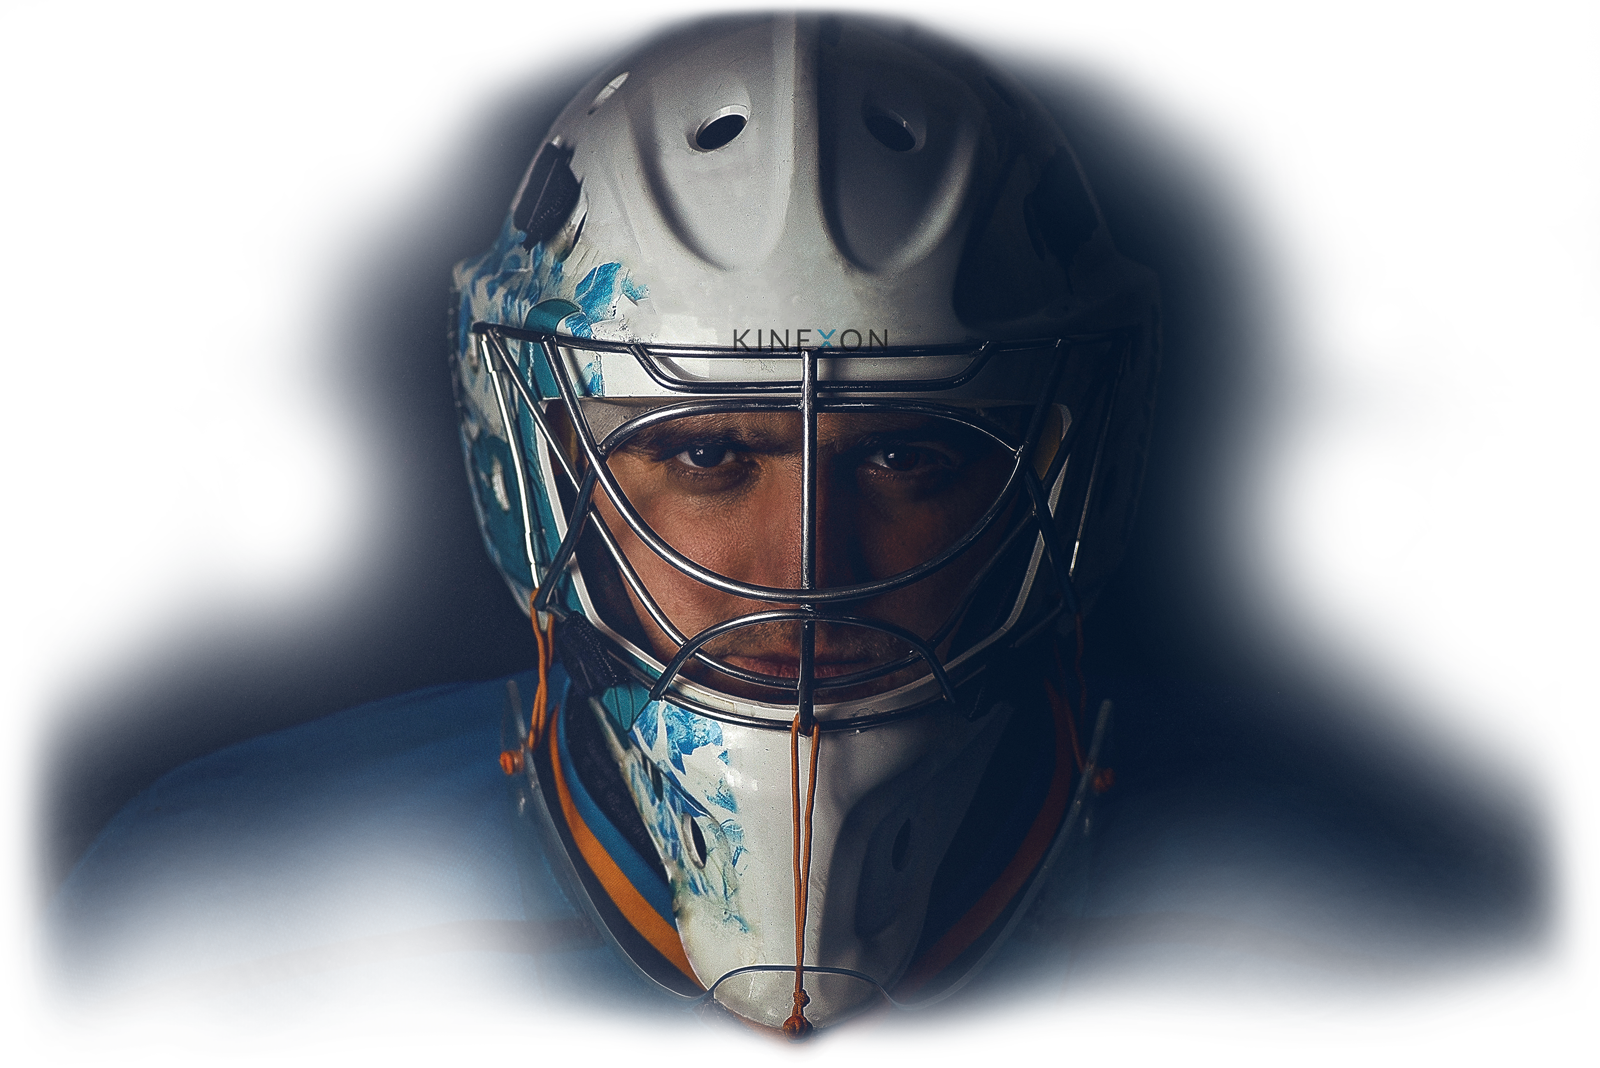 Ice Hockey Goalkeeper in the Mask